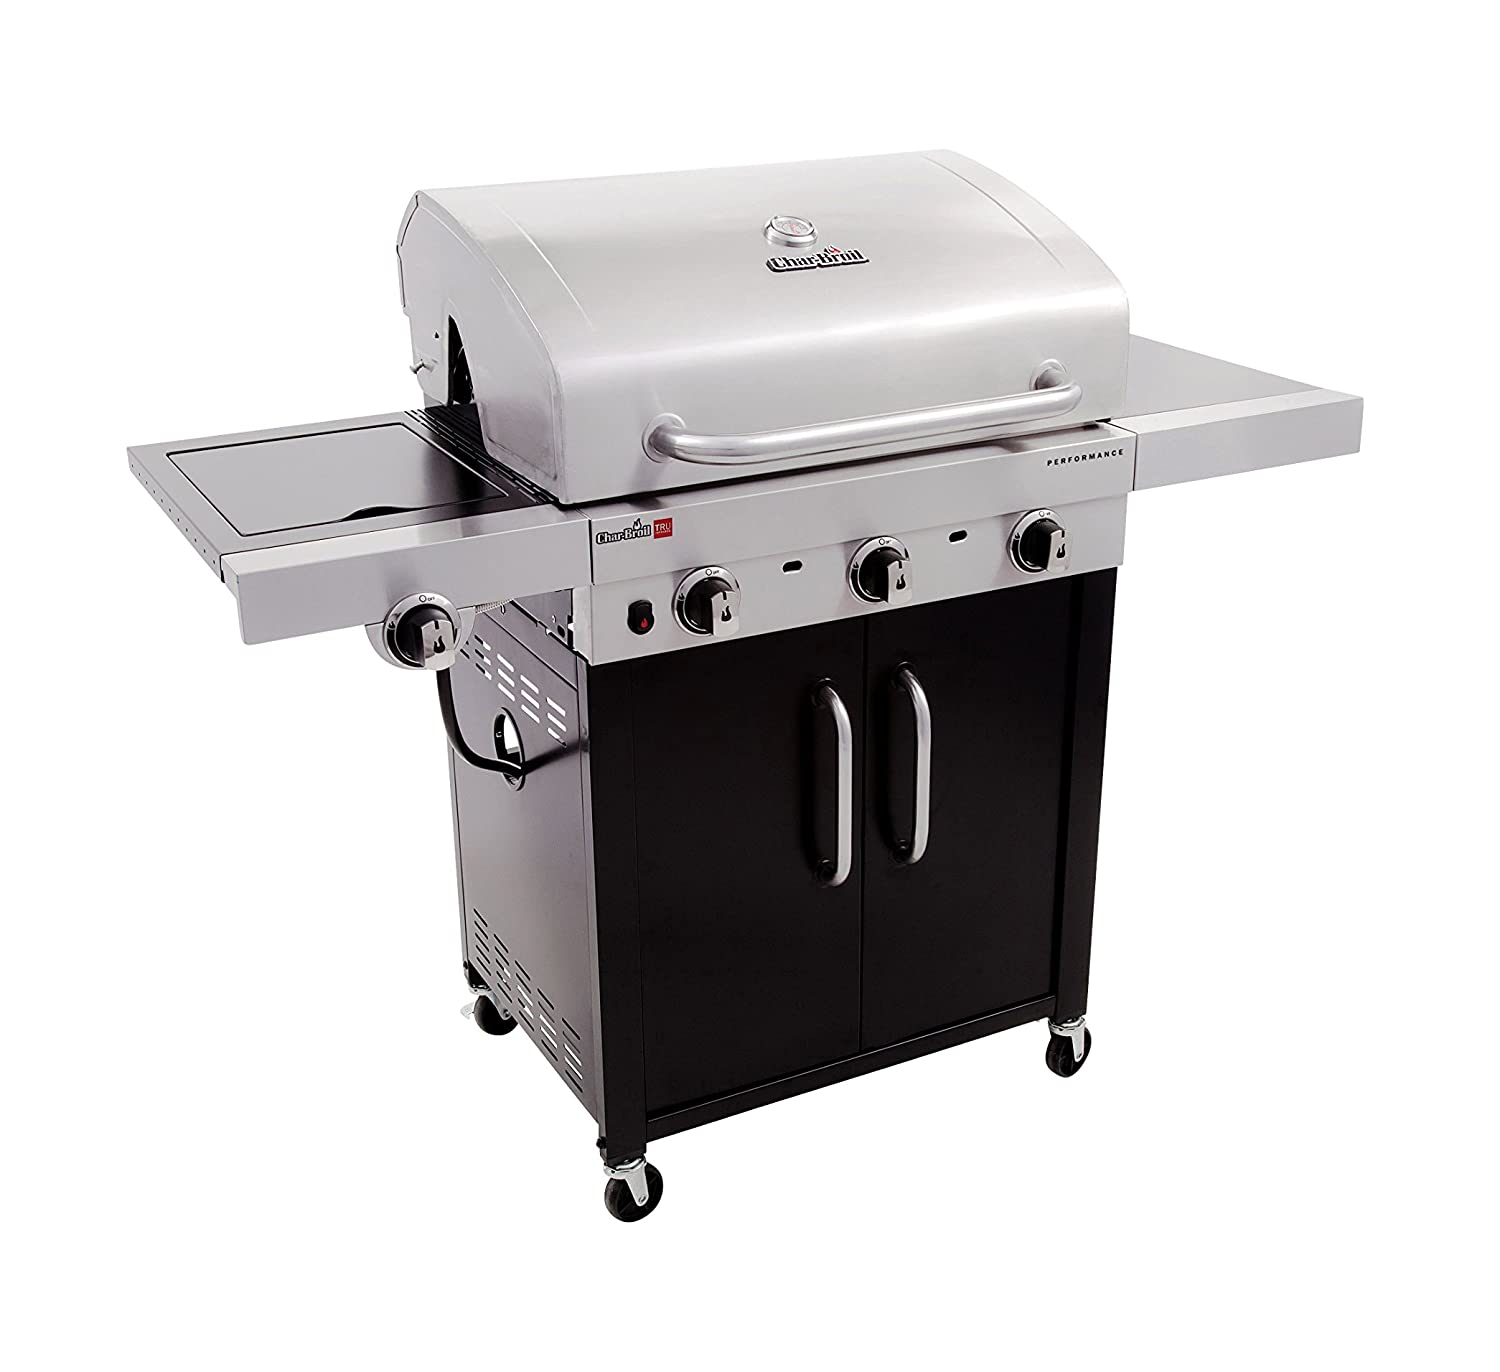 Amazon.com : Char-Broil Performance TRU-Infrared 450 3-Burner Cabinet  Liquid Propane Gas Grill : Garden & Outdoor